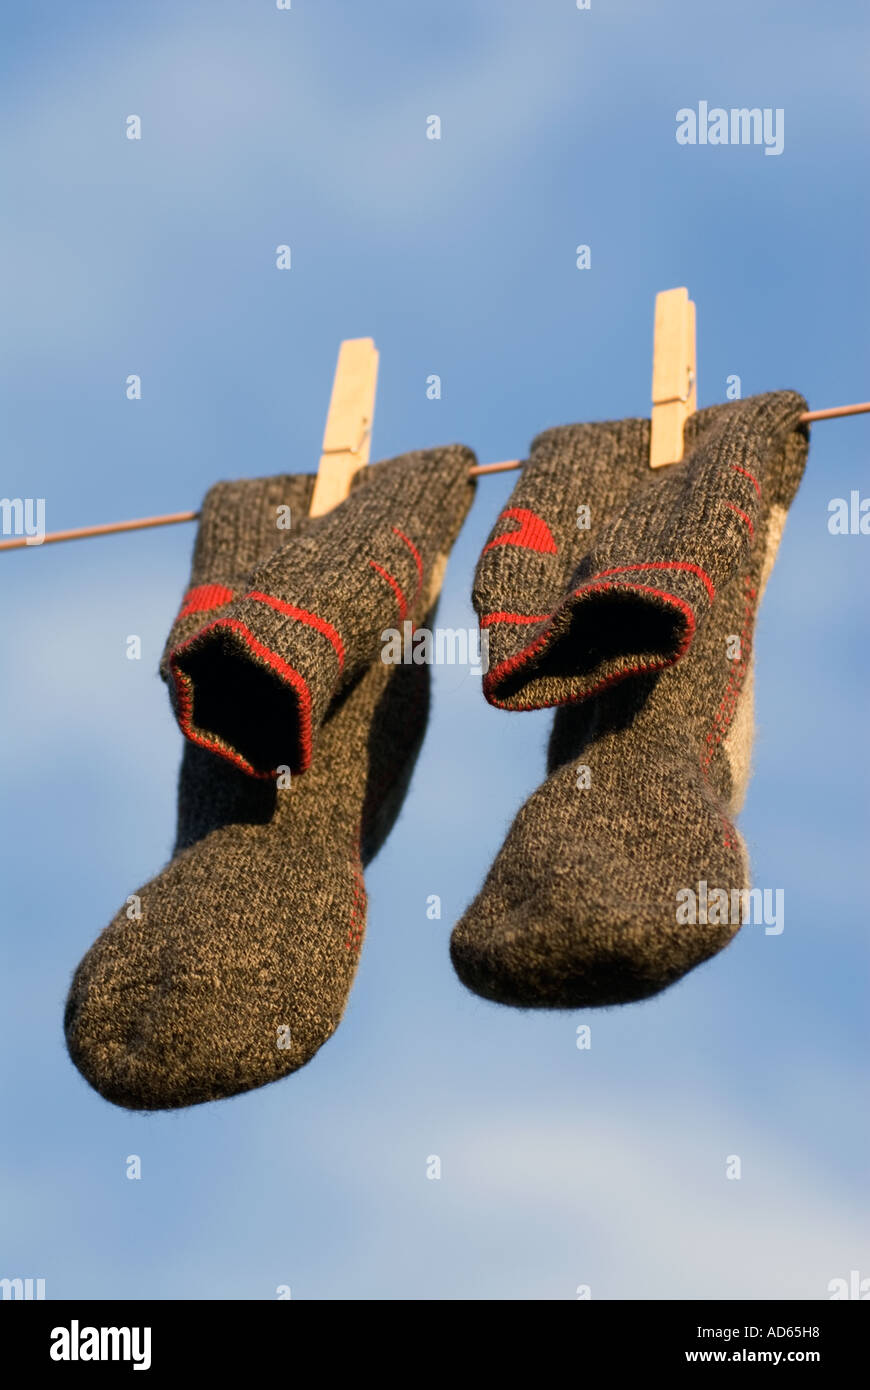 PICTURE CREDIT DOUG BLANE Concept A pair of clean grey gray and red wool walking socks hanging on a washing line to dry - Stock Image